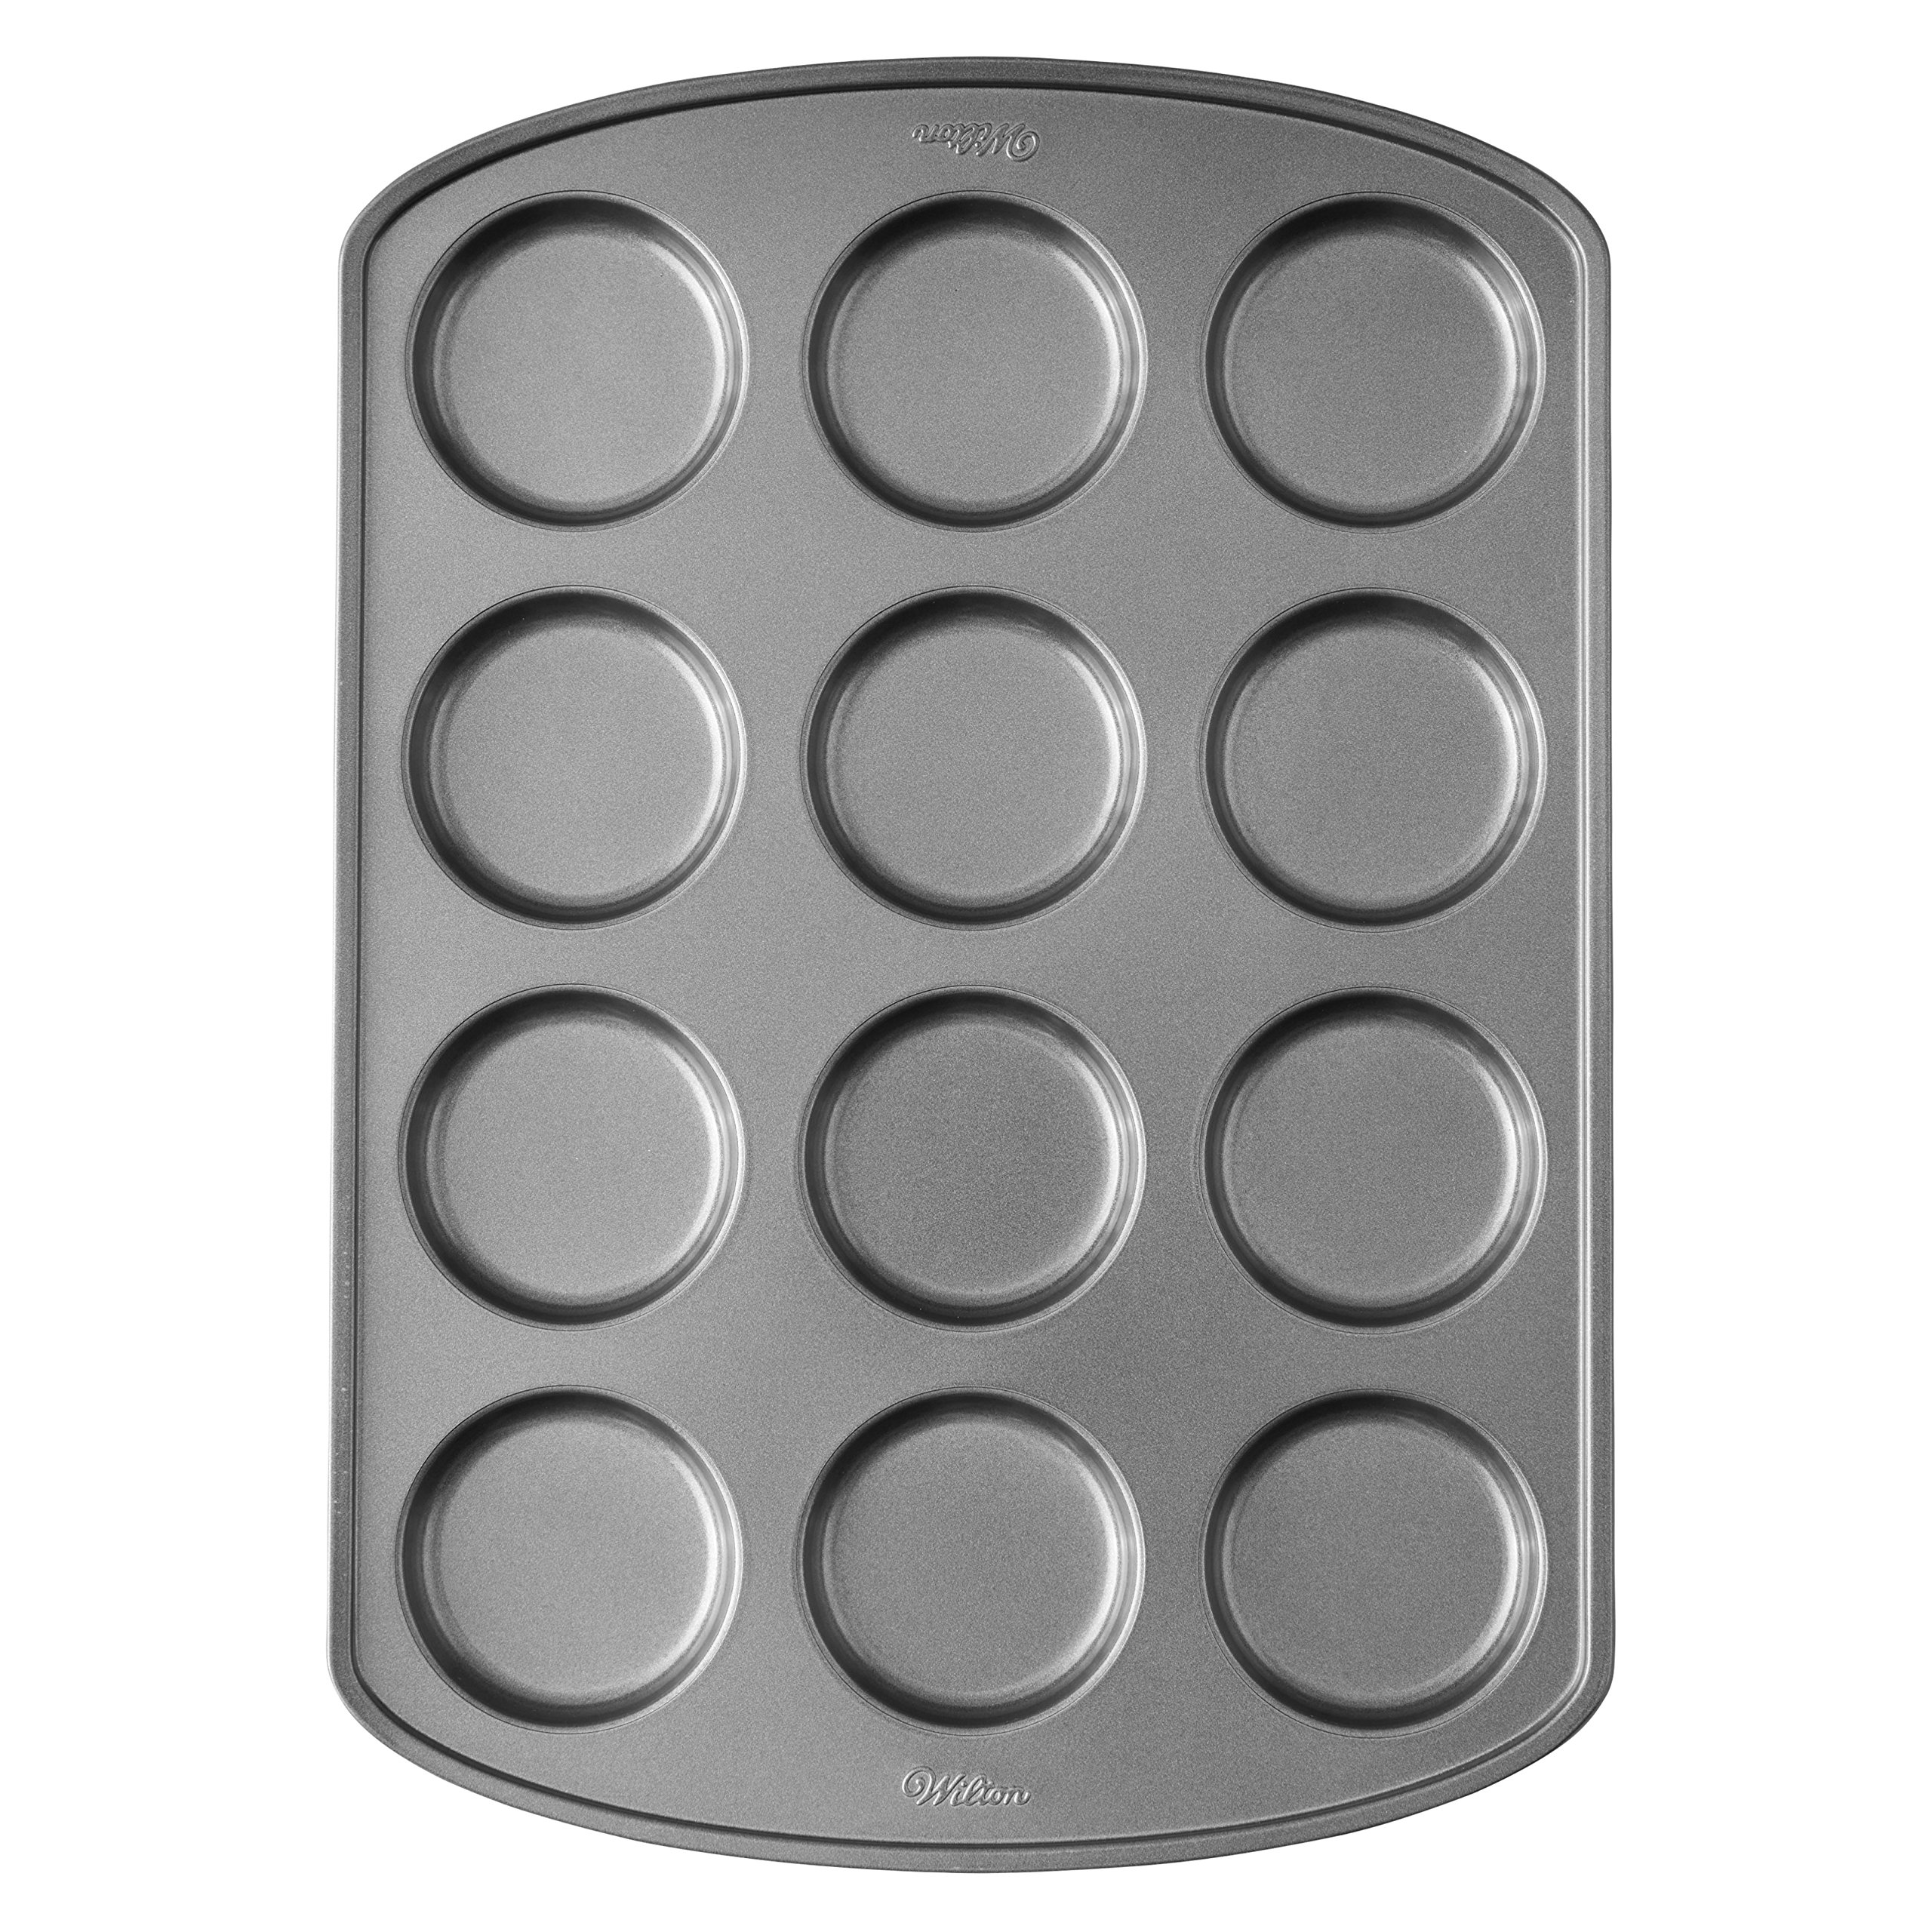 Wilton Perfect Results Premium Non-Stick Muffin Top Baking Pan, 12-Cup